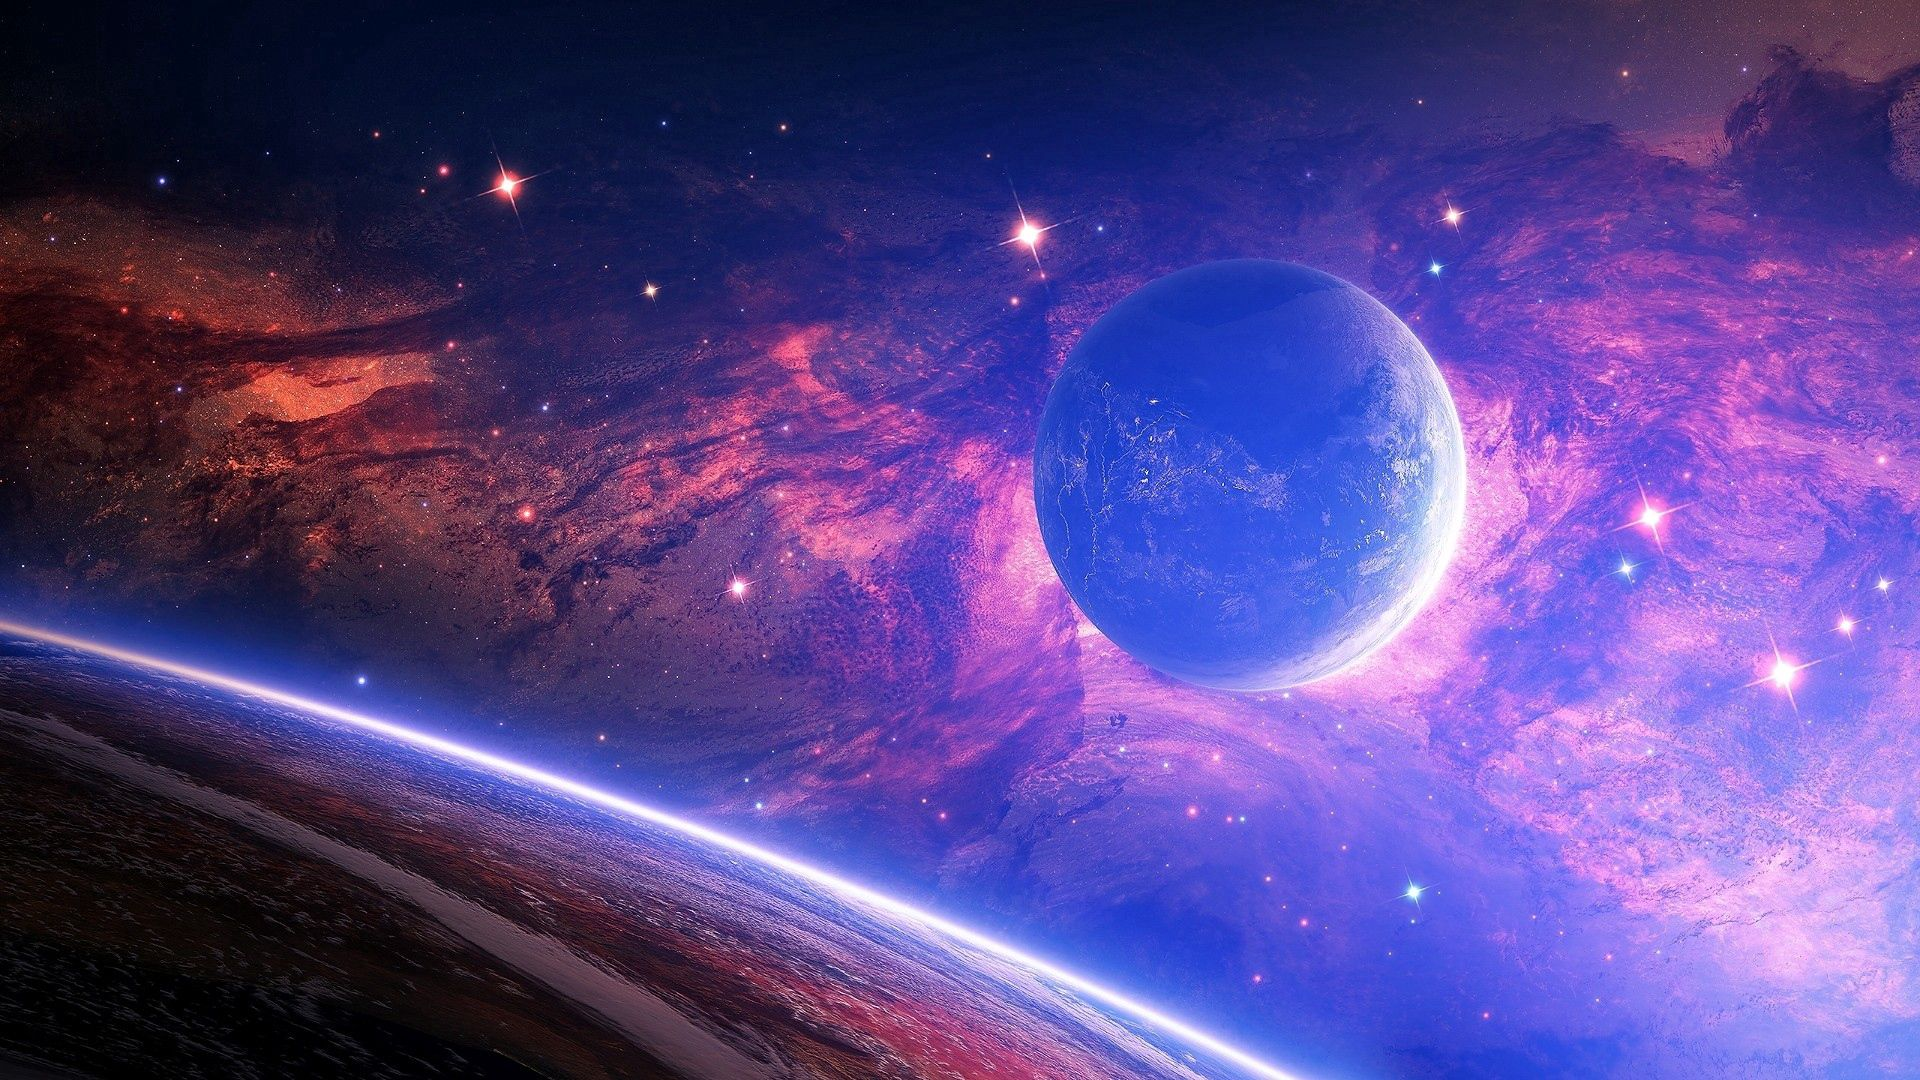 71079 download wallpaper Planet, Shine, Light, Stains, Spots, Universe screensavers and pictures for free